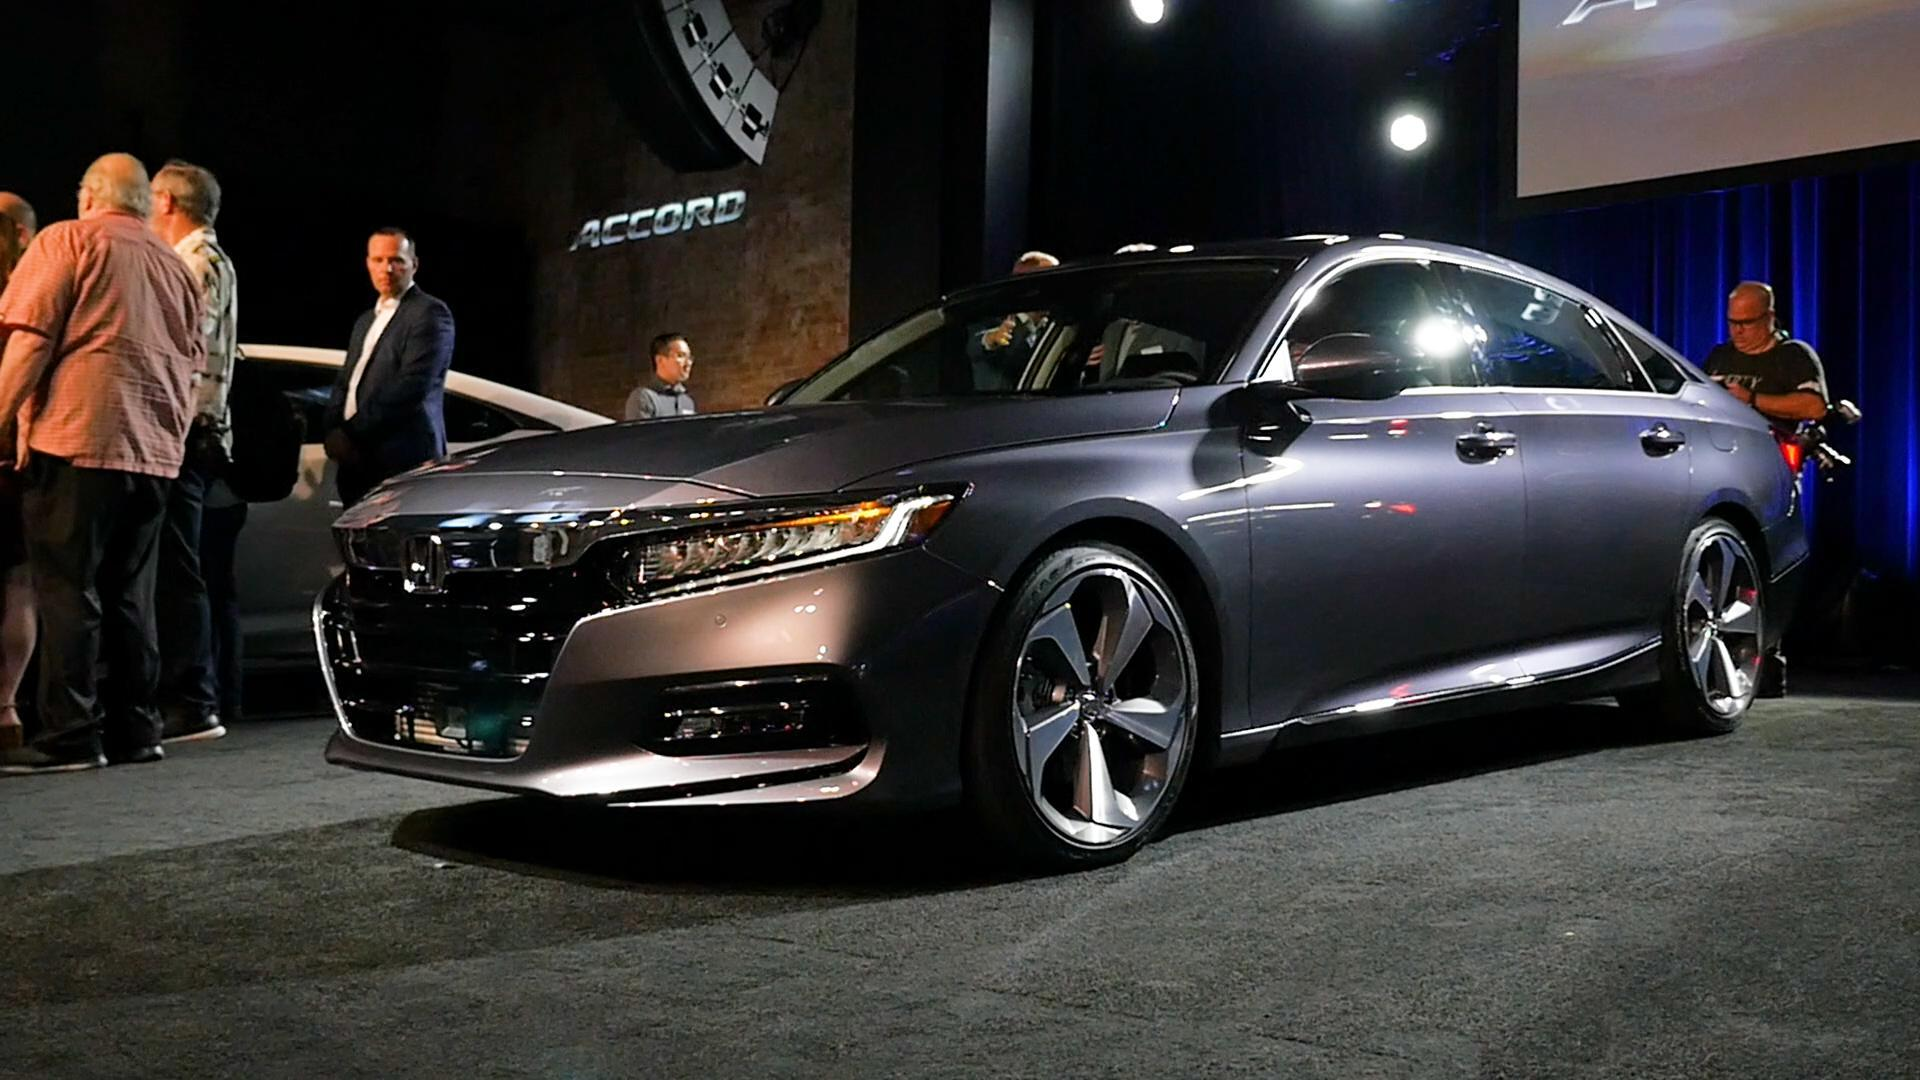 Honda invests $267 million, to add 300 jobs for new Accord model